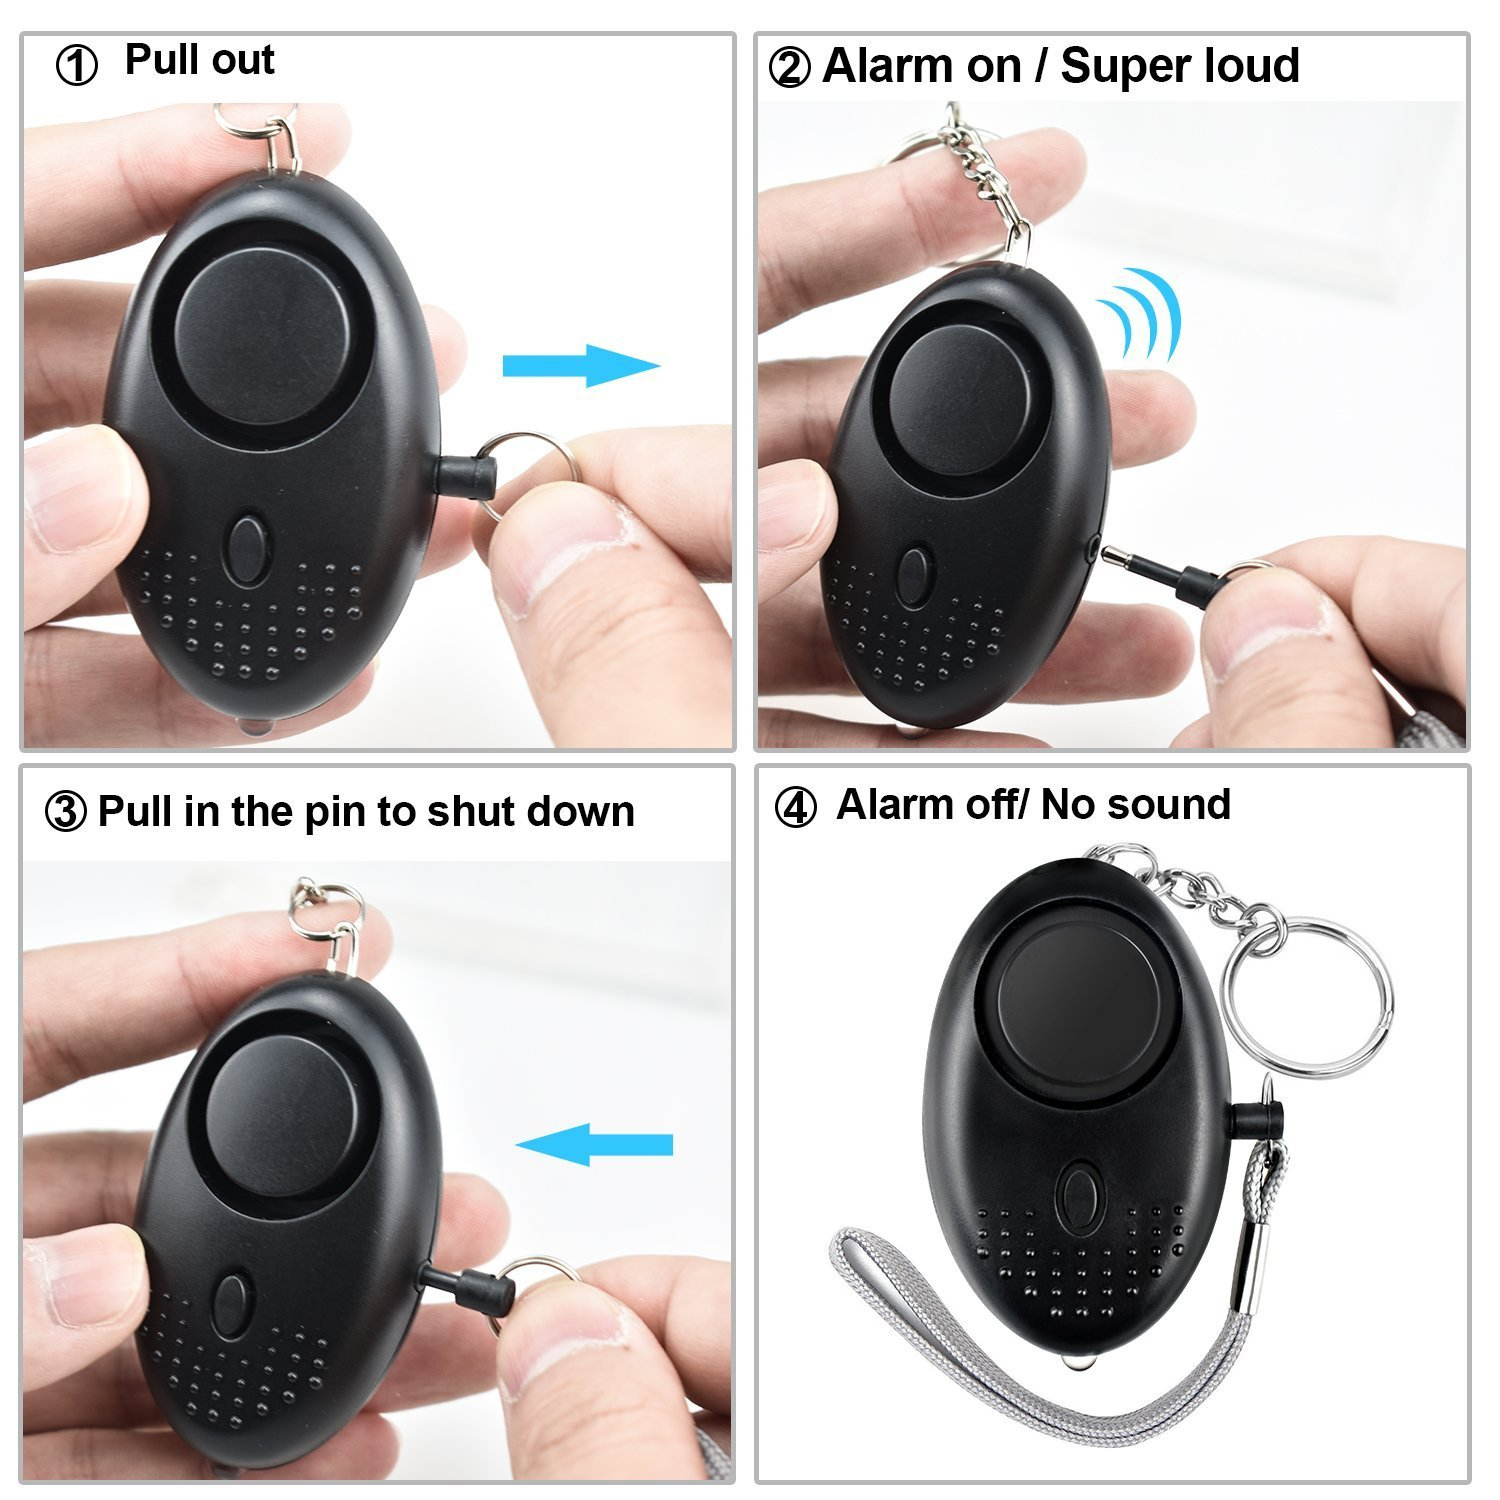 140 Emergency Self-Defense Emergency Security Alarm with LED Light for Women Girls Elderly Safety Batteries Included ZtuoYong Personal Alarm Keychain Light